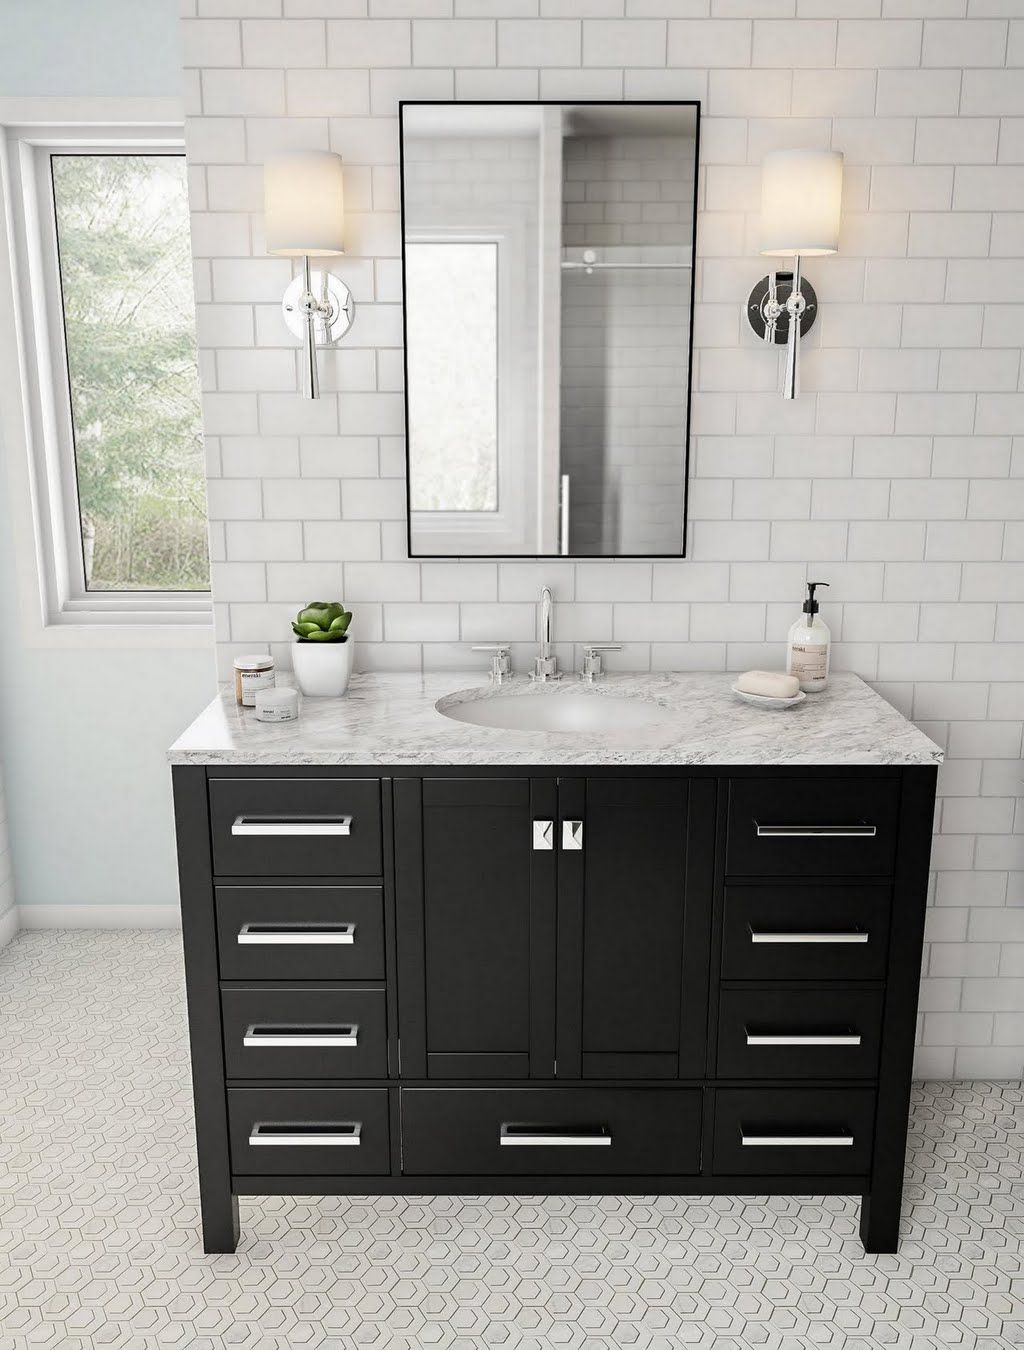 shop our bathroom department to customize your black and white rh pinterest com